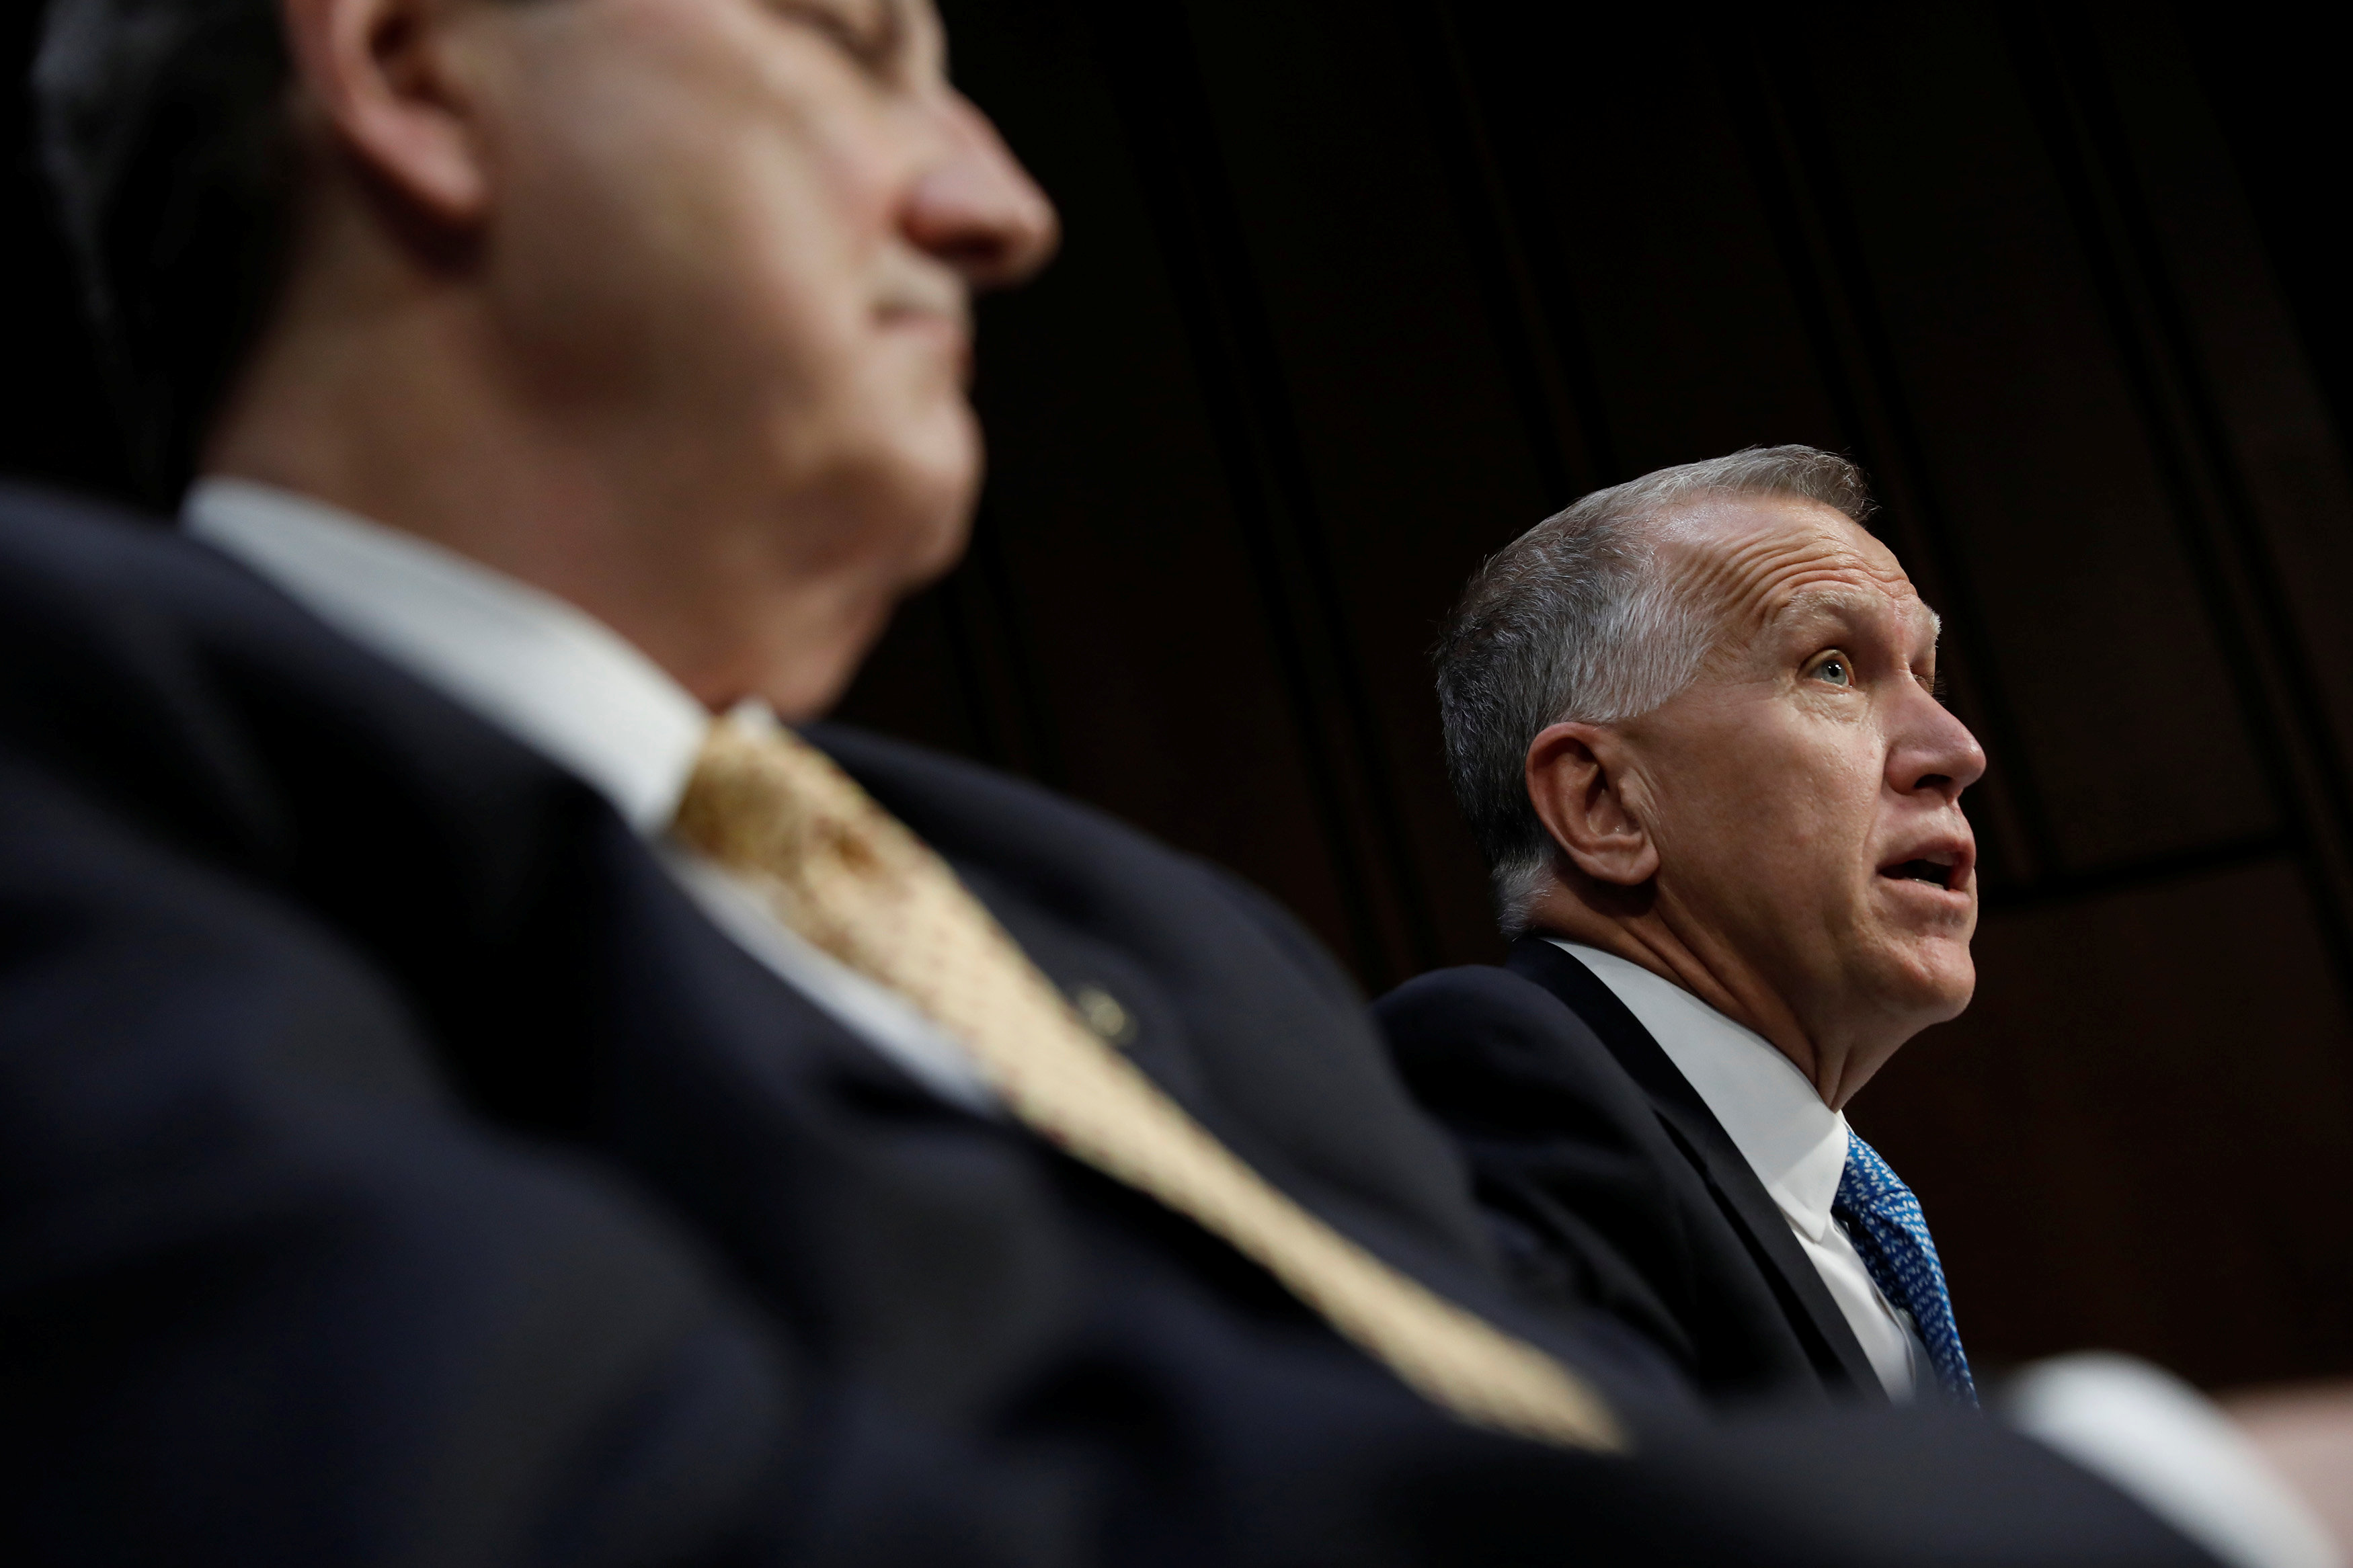 Sen. Thom Tillis, flanked by Sen. John Kennedy, speaks during a meeting of the Senate Judiciary Committee to discuss the nomination of Judge Neil Gorsuch to the Supreme Court on Capitol Hill in Washington on April 3, 2017. (REUTERS/Aaron P. Bernstein)